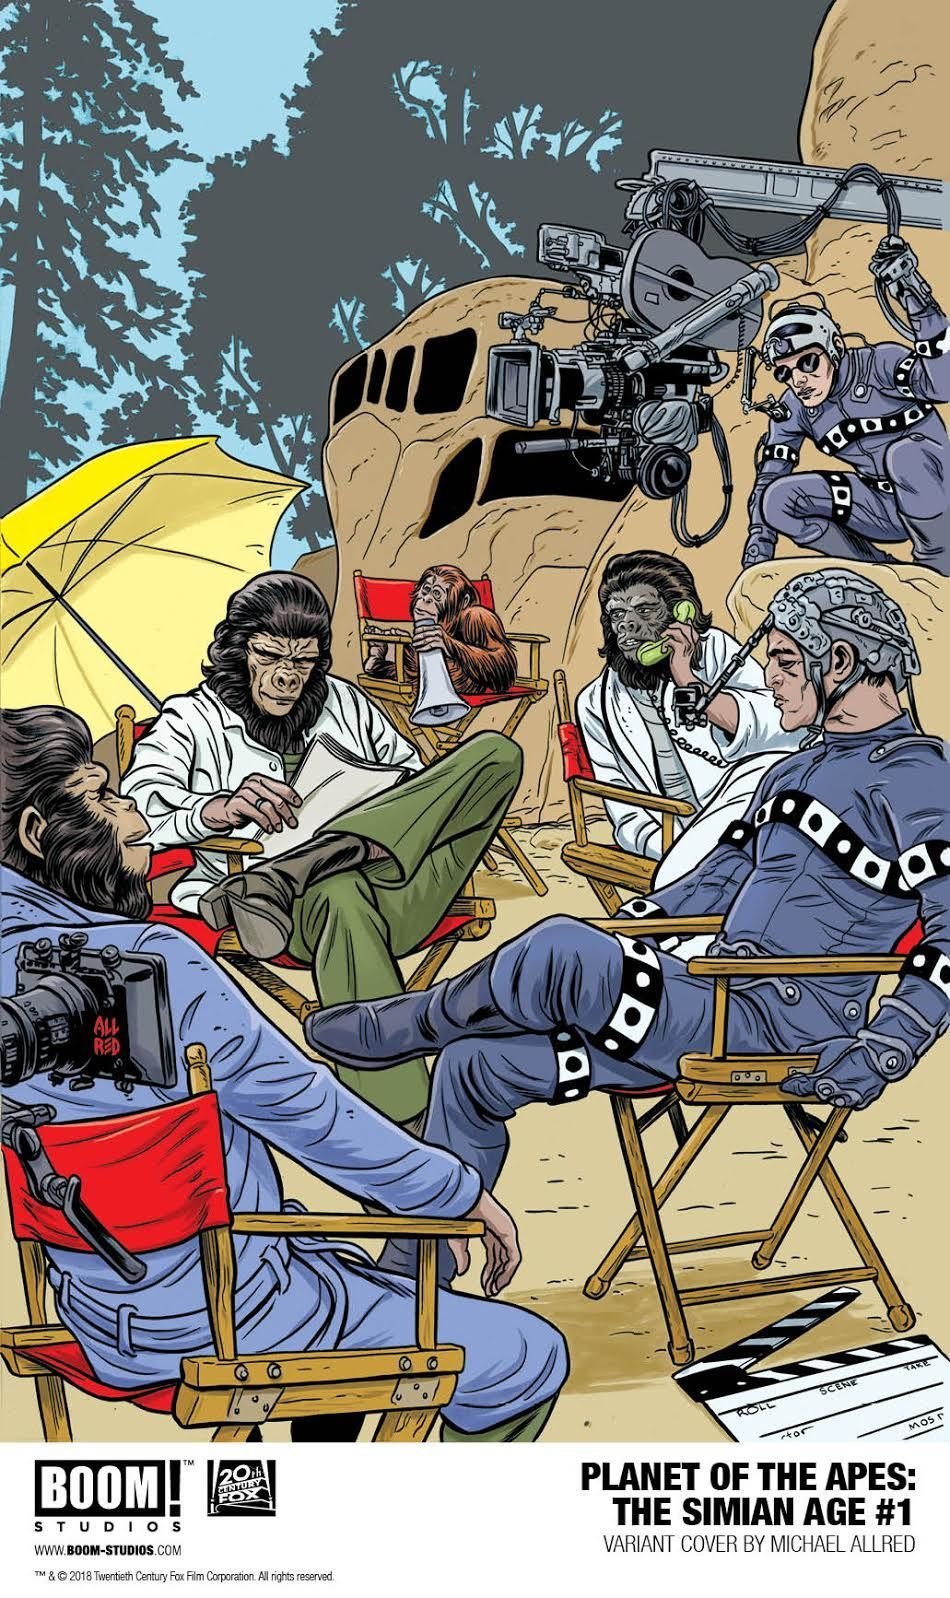 Exclusive Boom Goes Bananas With Two New Planet Of The Apes